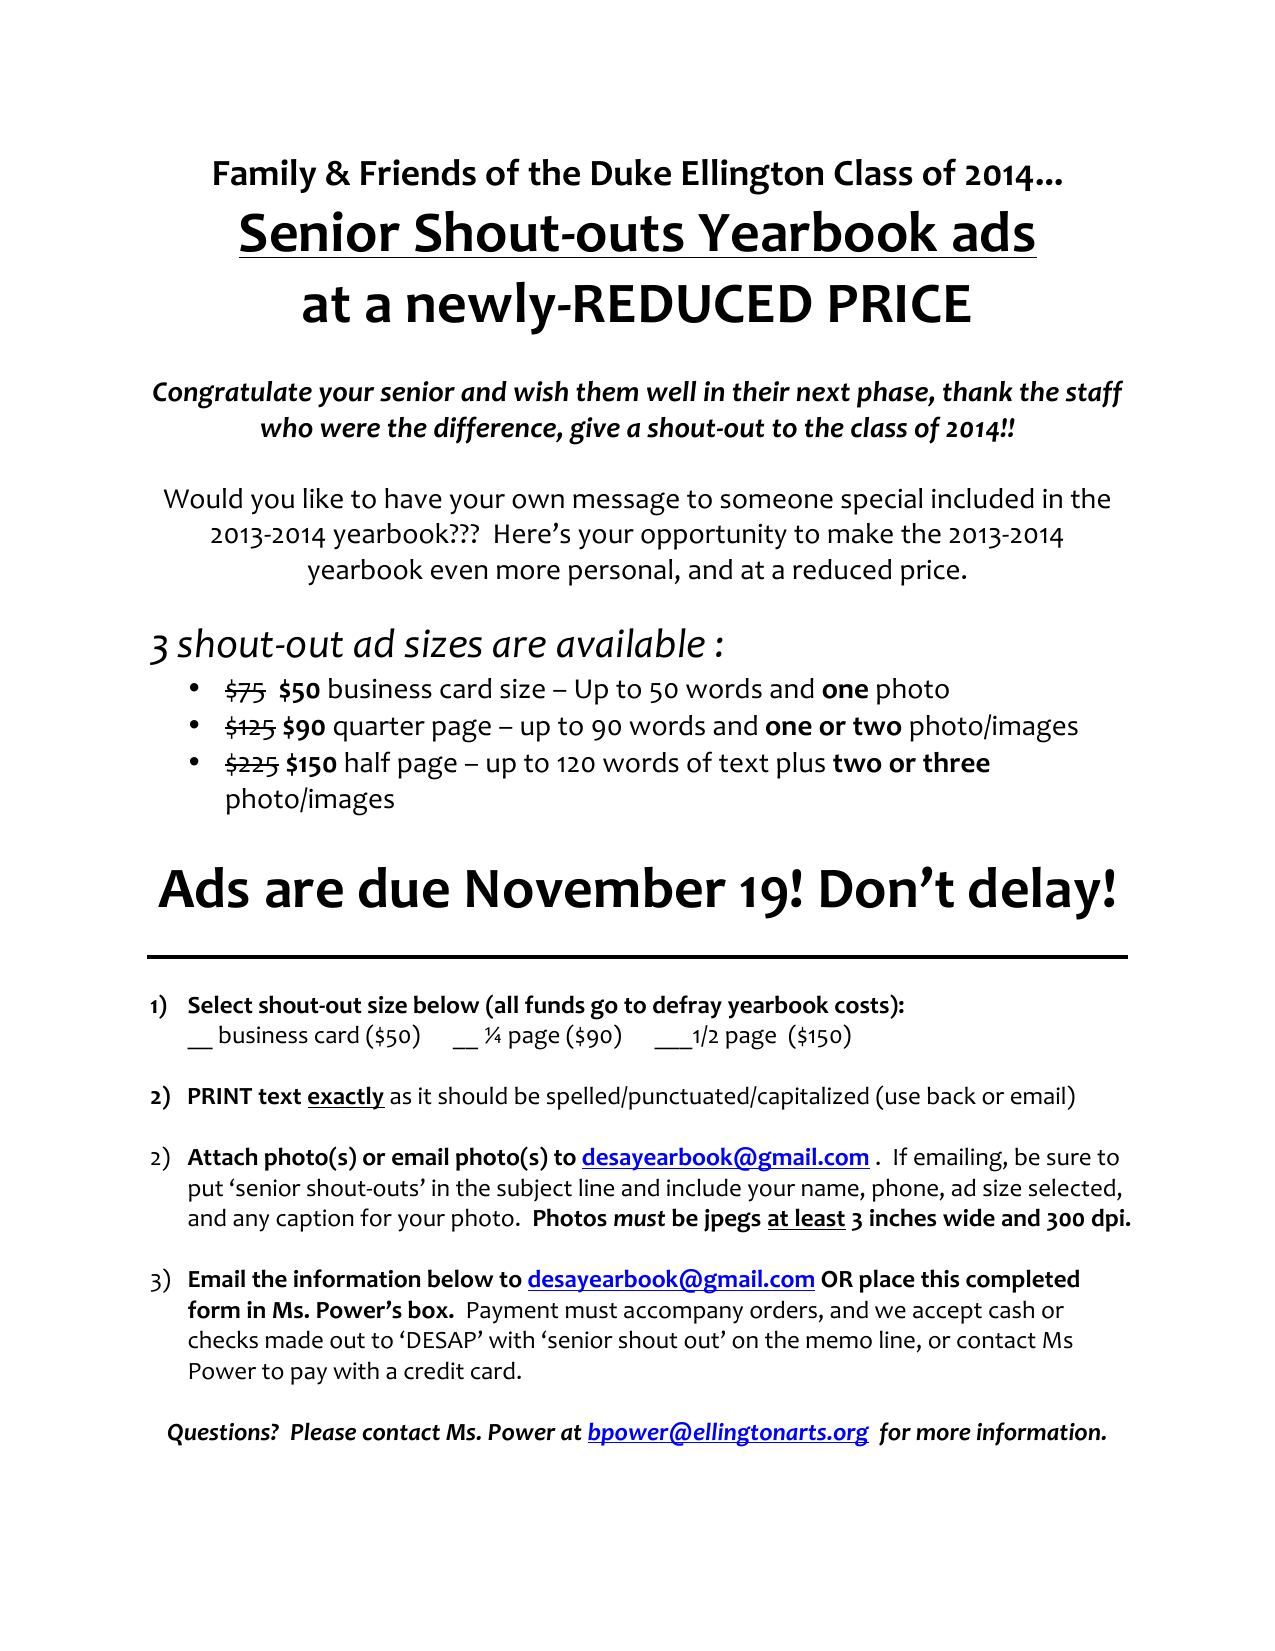 Senior Shout-‐outs Yearbook ads at a newly